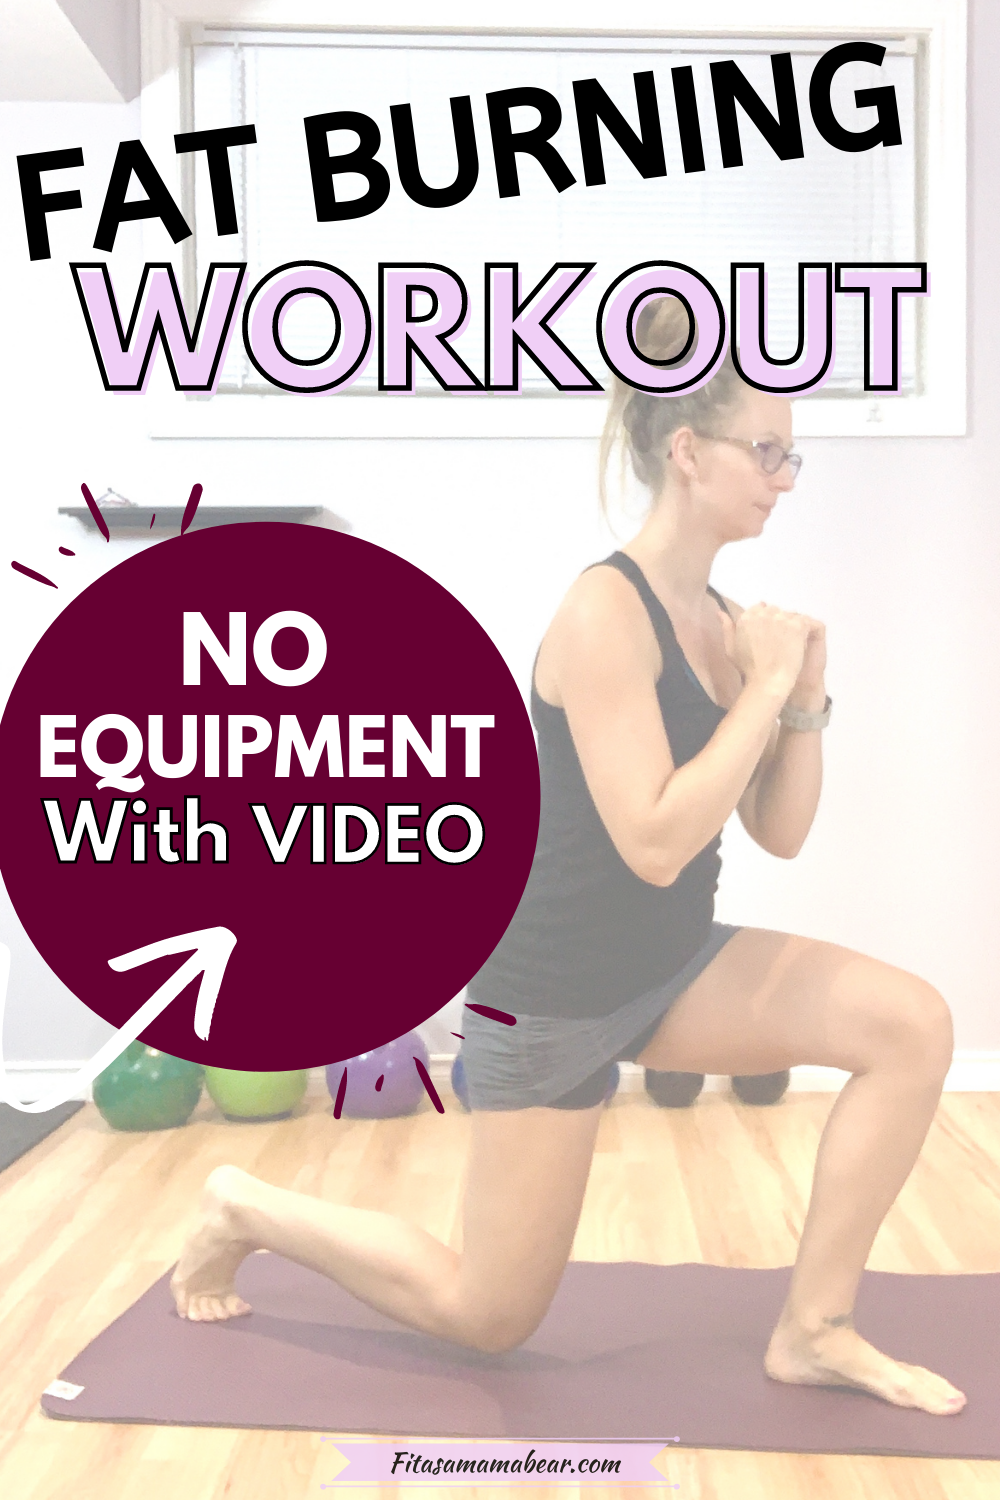 Pinterest image with text: woman performing a lunge with text about a fat burning workout